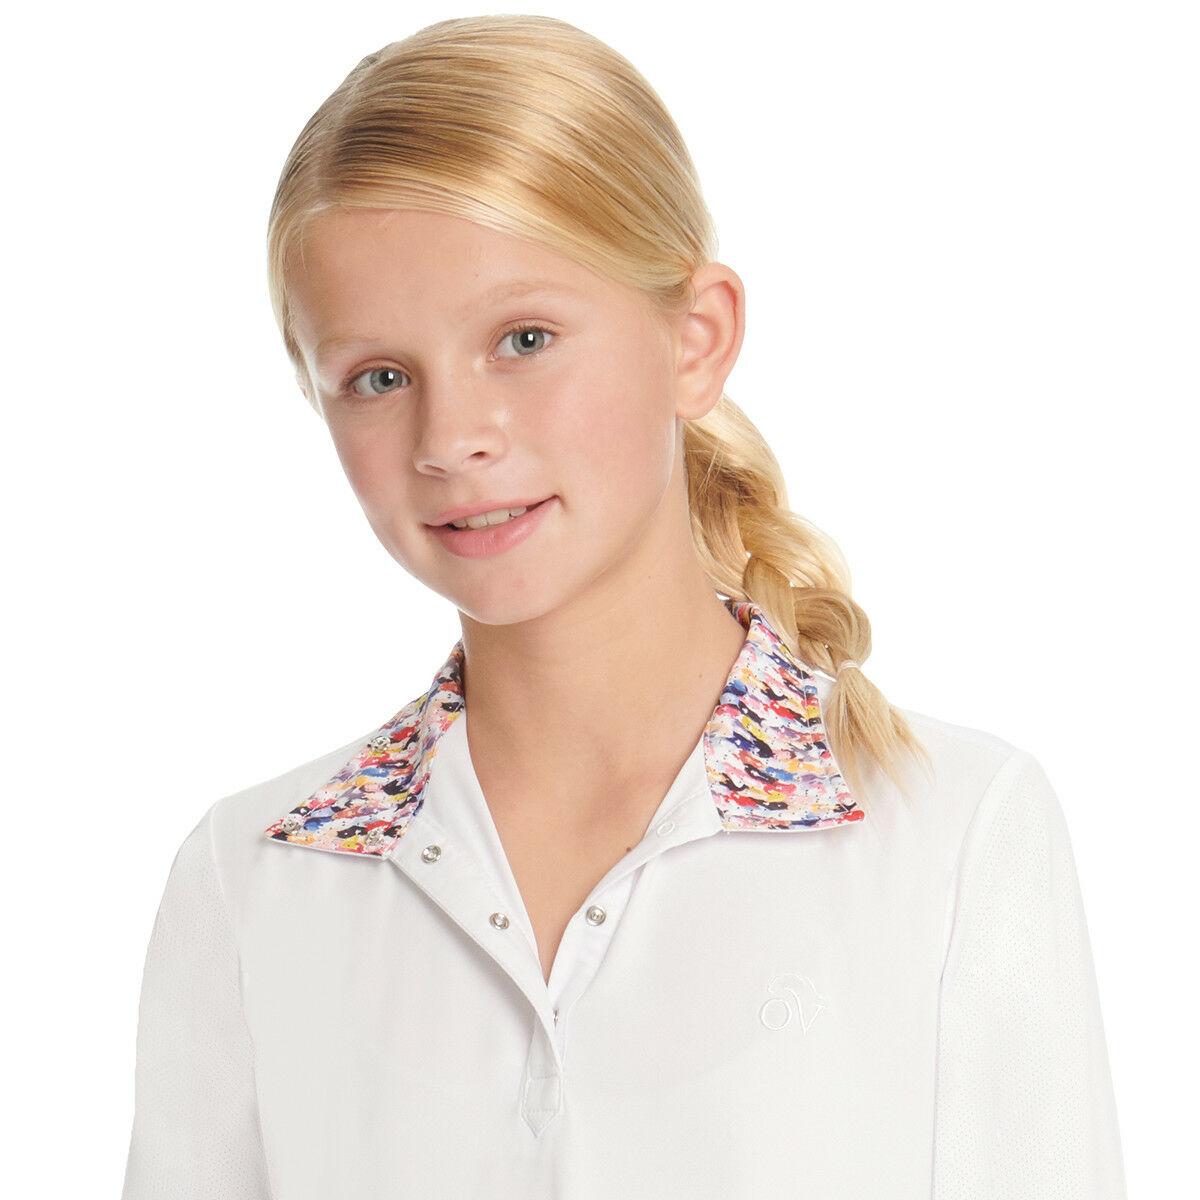 Ovation Ellie Tech Girls Show Shirt -  Long Sleeve - OMG Ponies - Differ Sizess  discount promotions